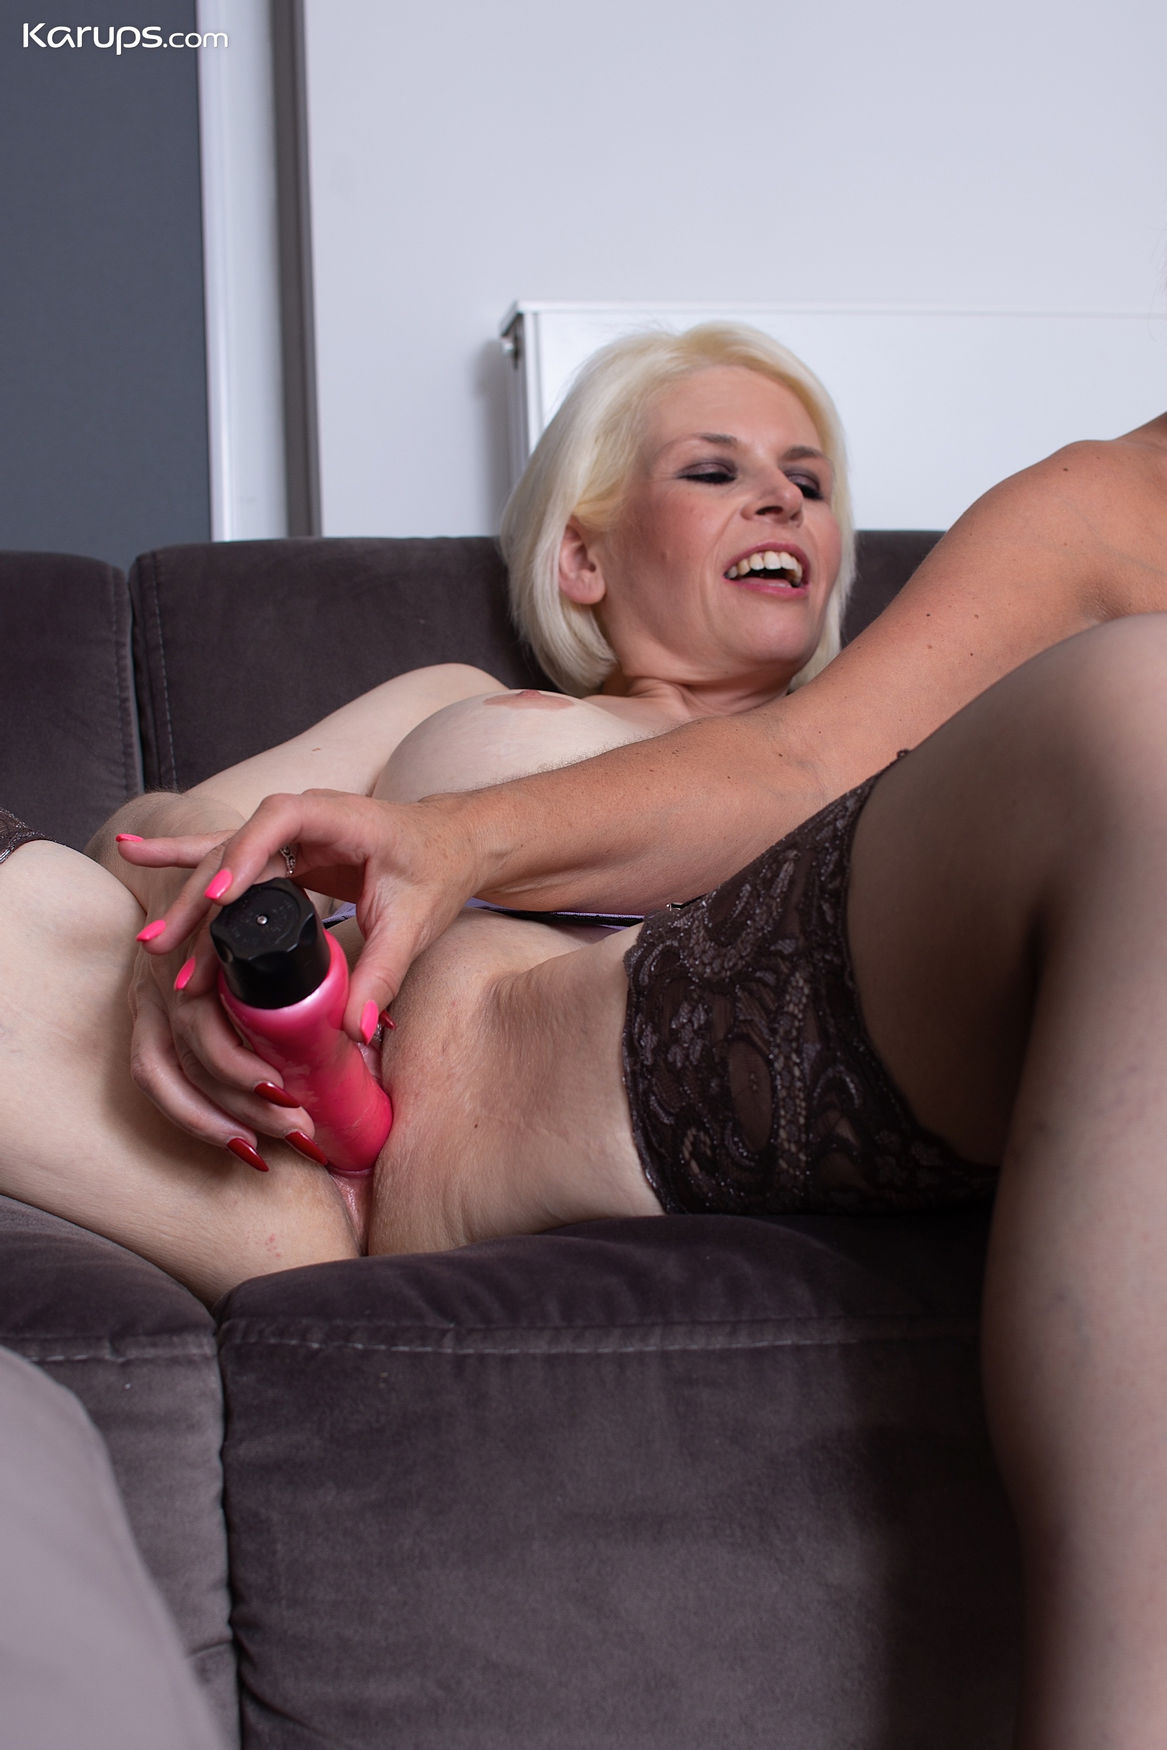 Blonde mature pornstar Skyler Squirt with big vibrator in a free Karup lesbian sex gallery with  ...